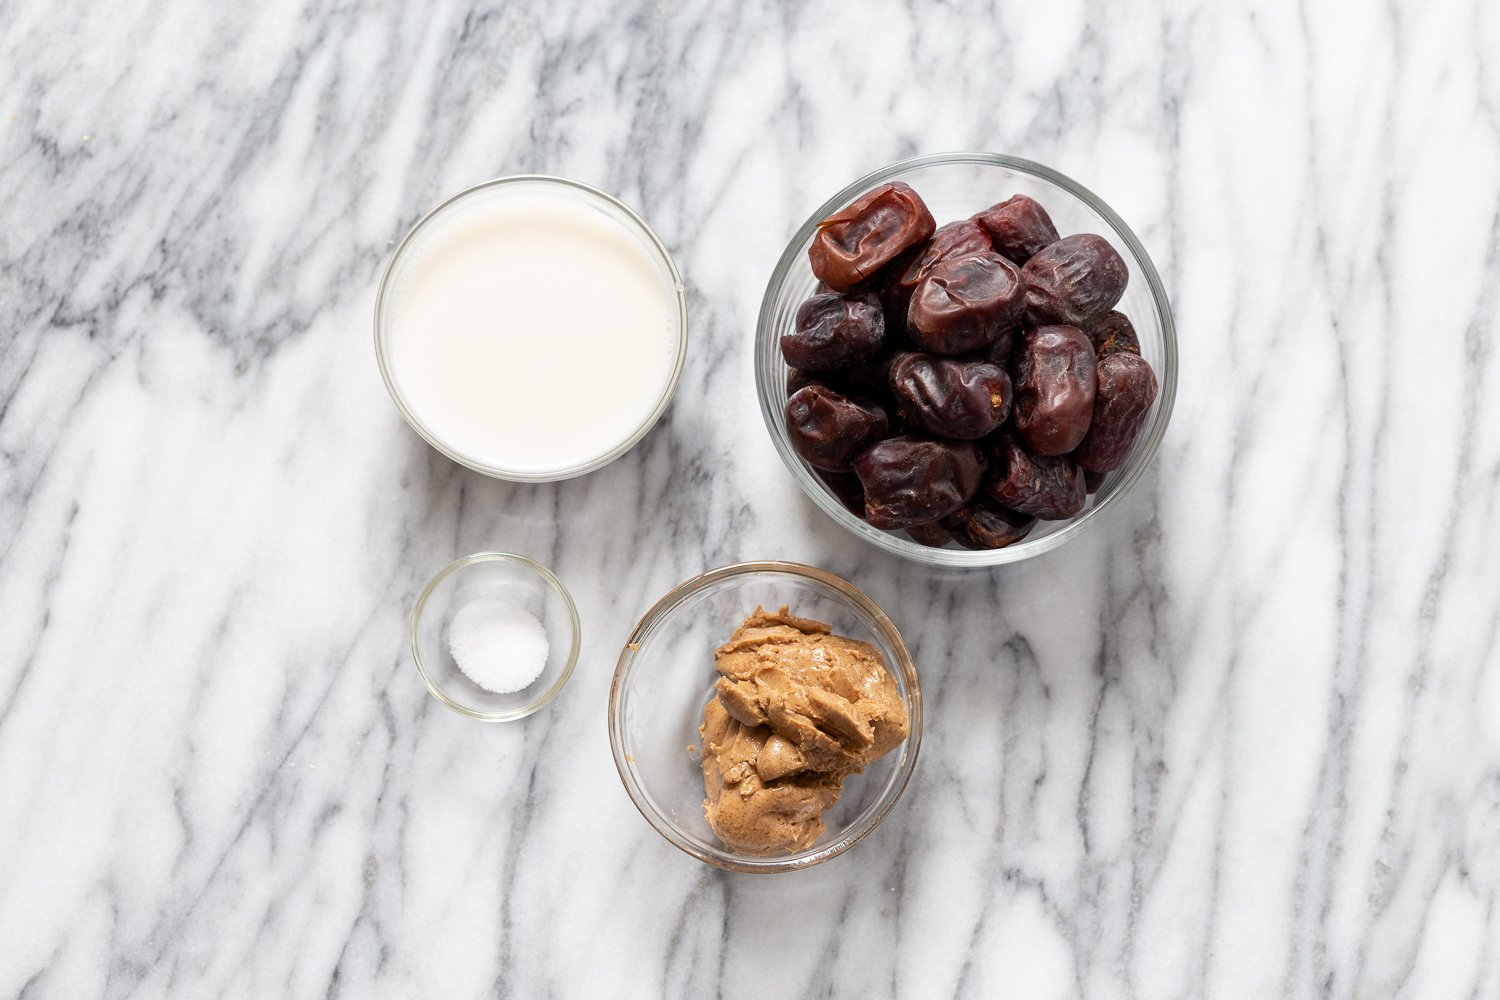 small glass dishes with plant based milk, dates, nut butter and salt on a kitchen counter